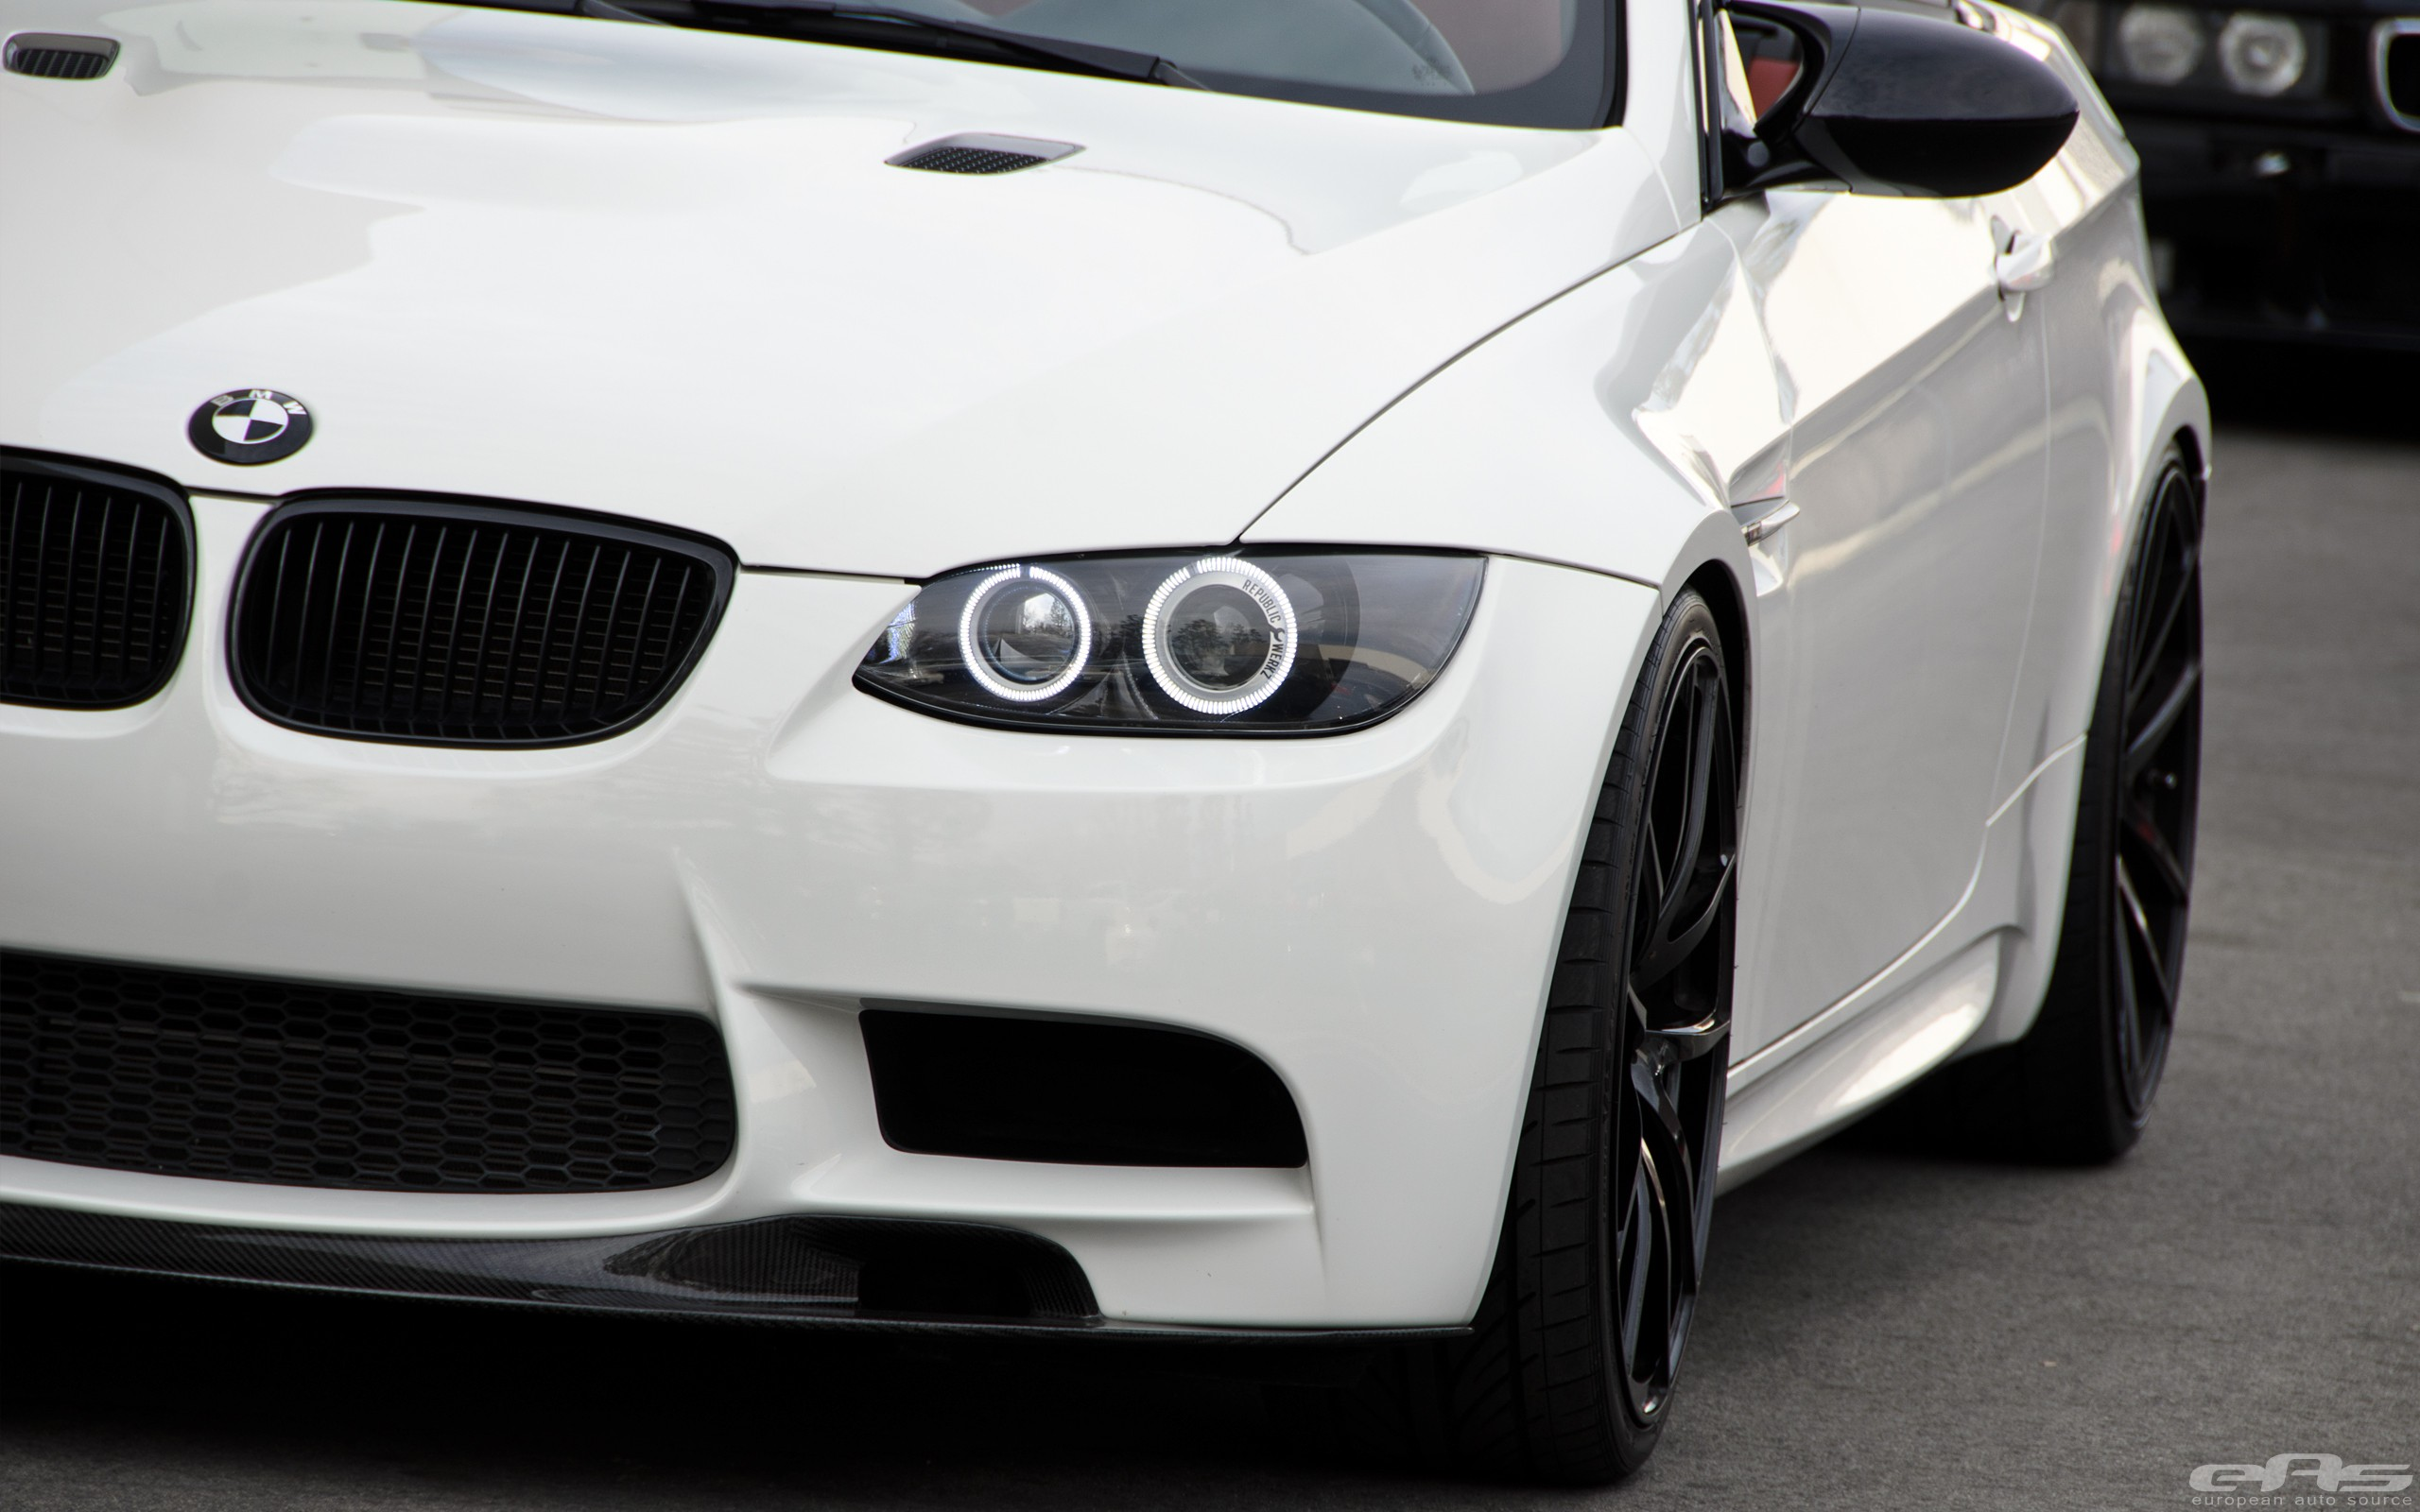 Tuned BMW E93 M3 Convertible Puts Down 376 HP at the ...